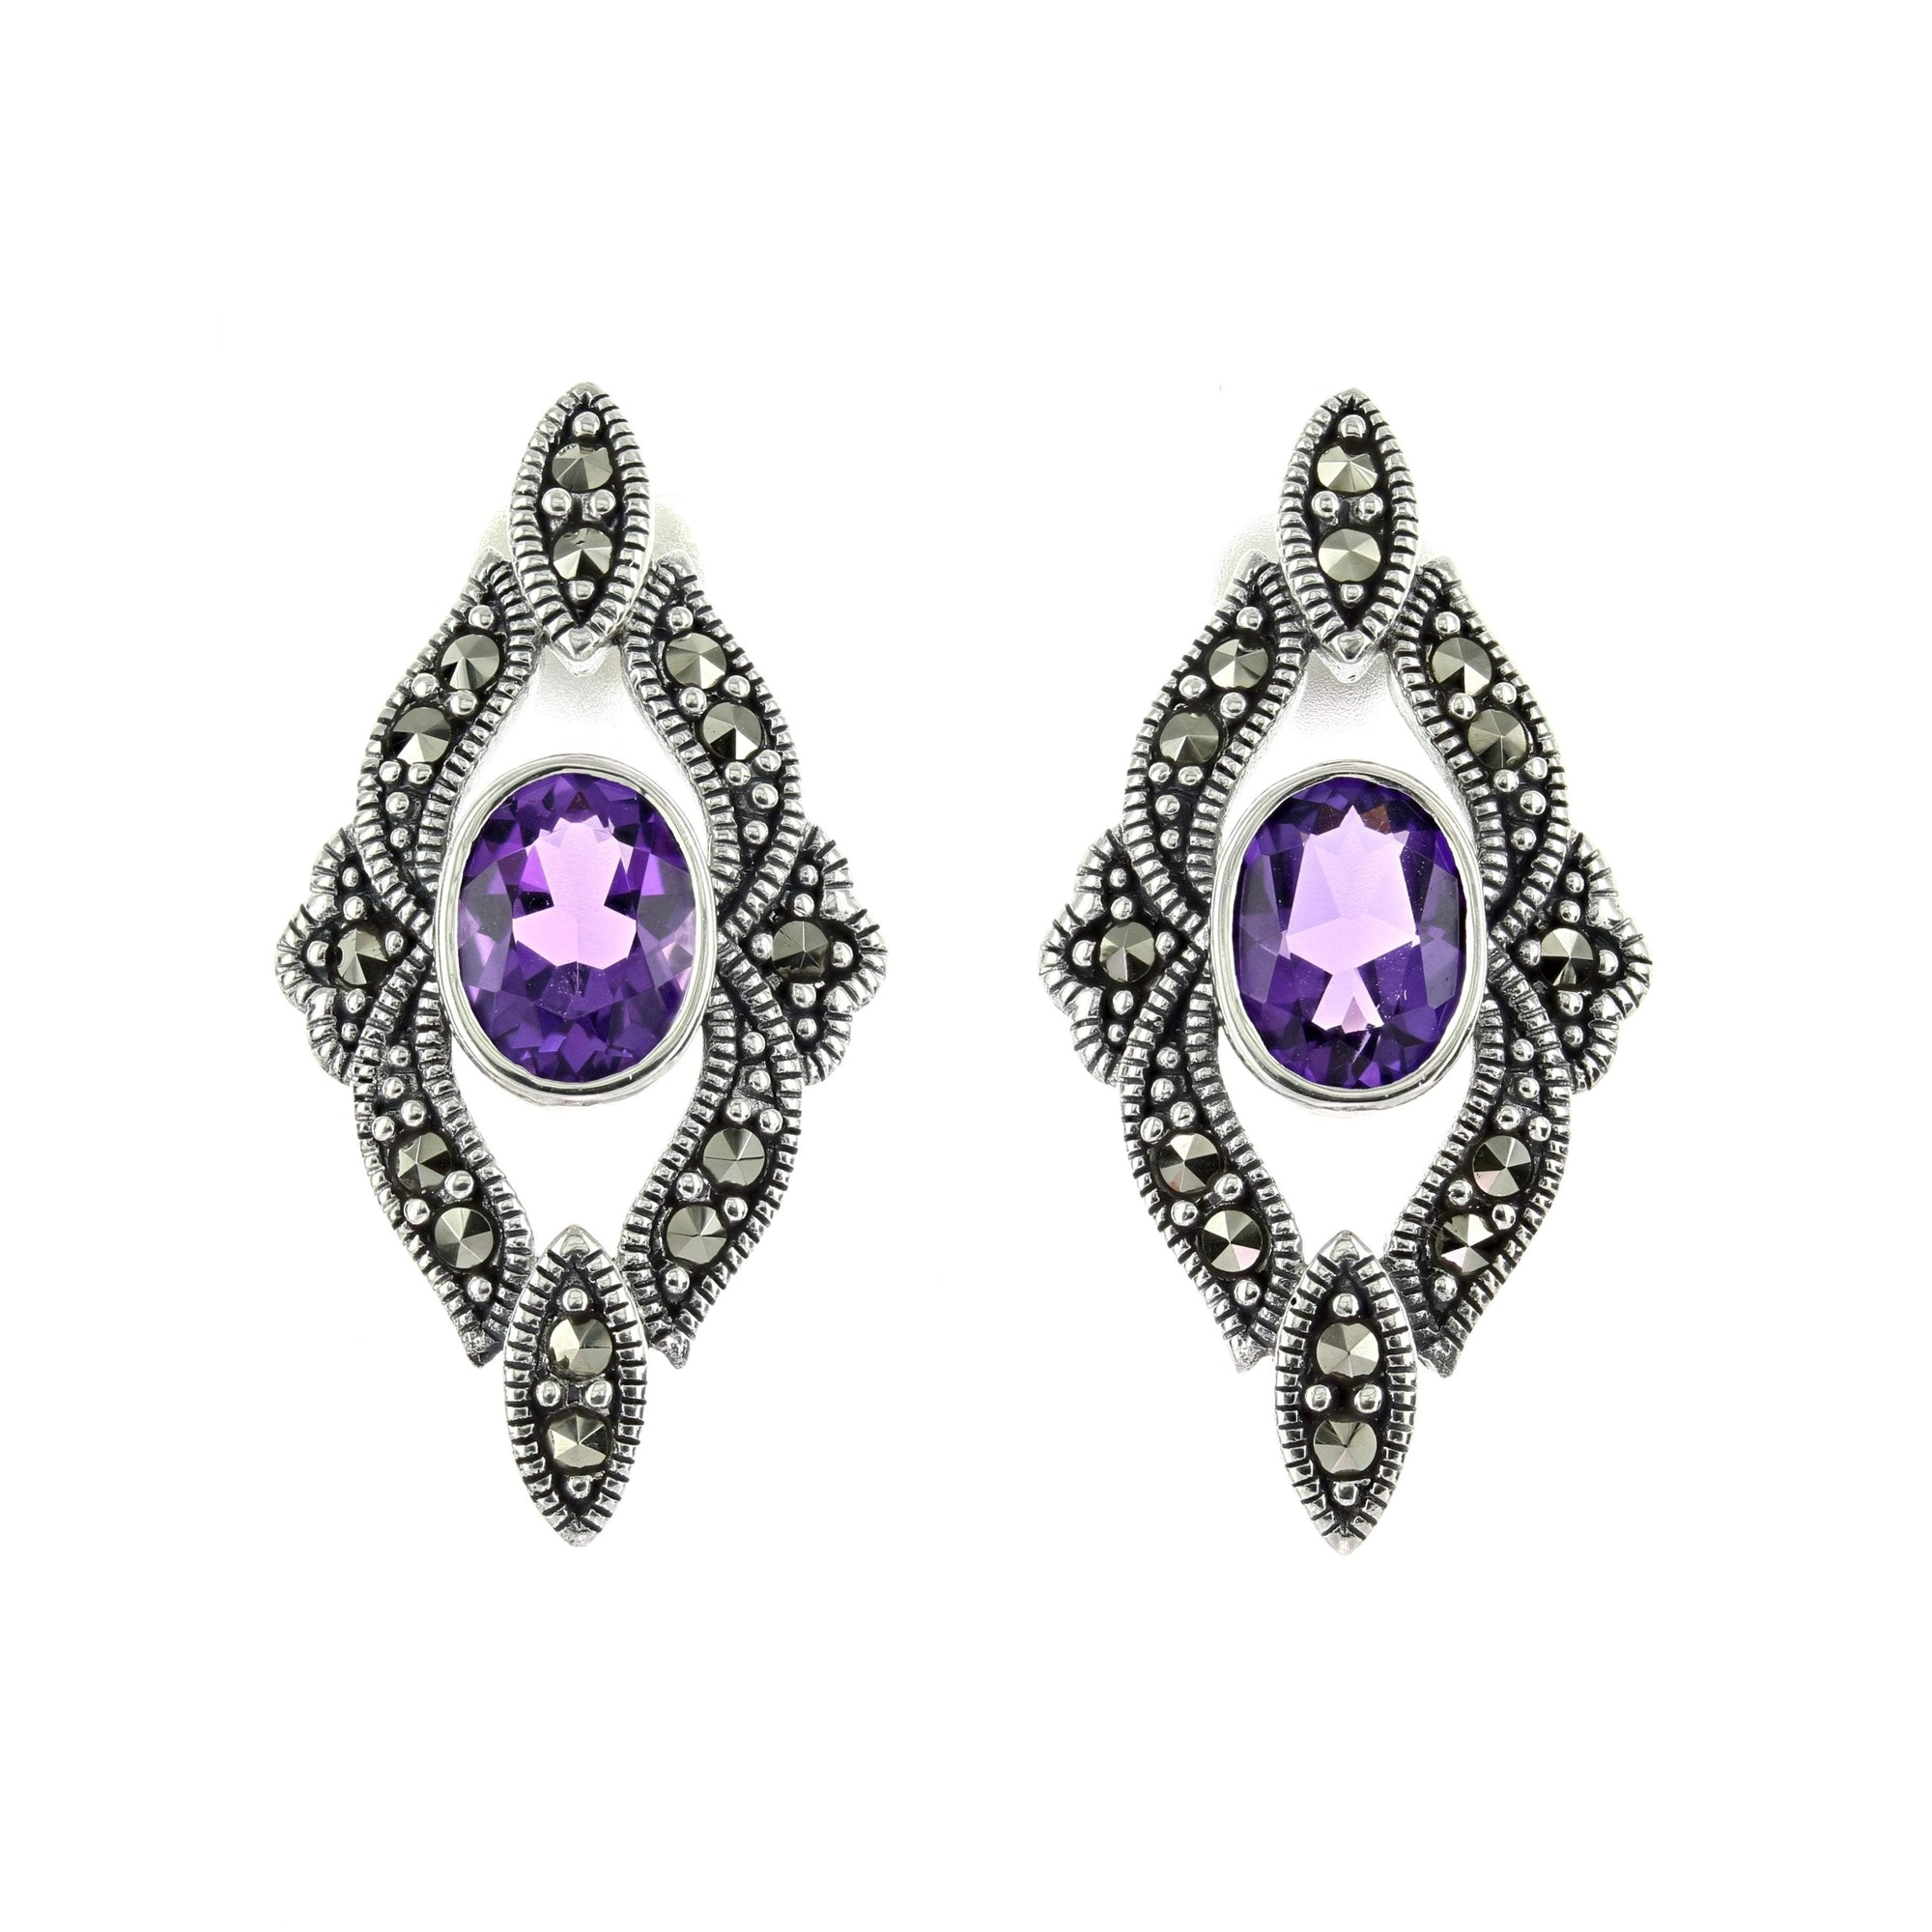 Marcasite Collection Earrings Default Title / Silver / Black Marcasite & Amethyst Stud Earrings